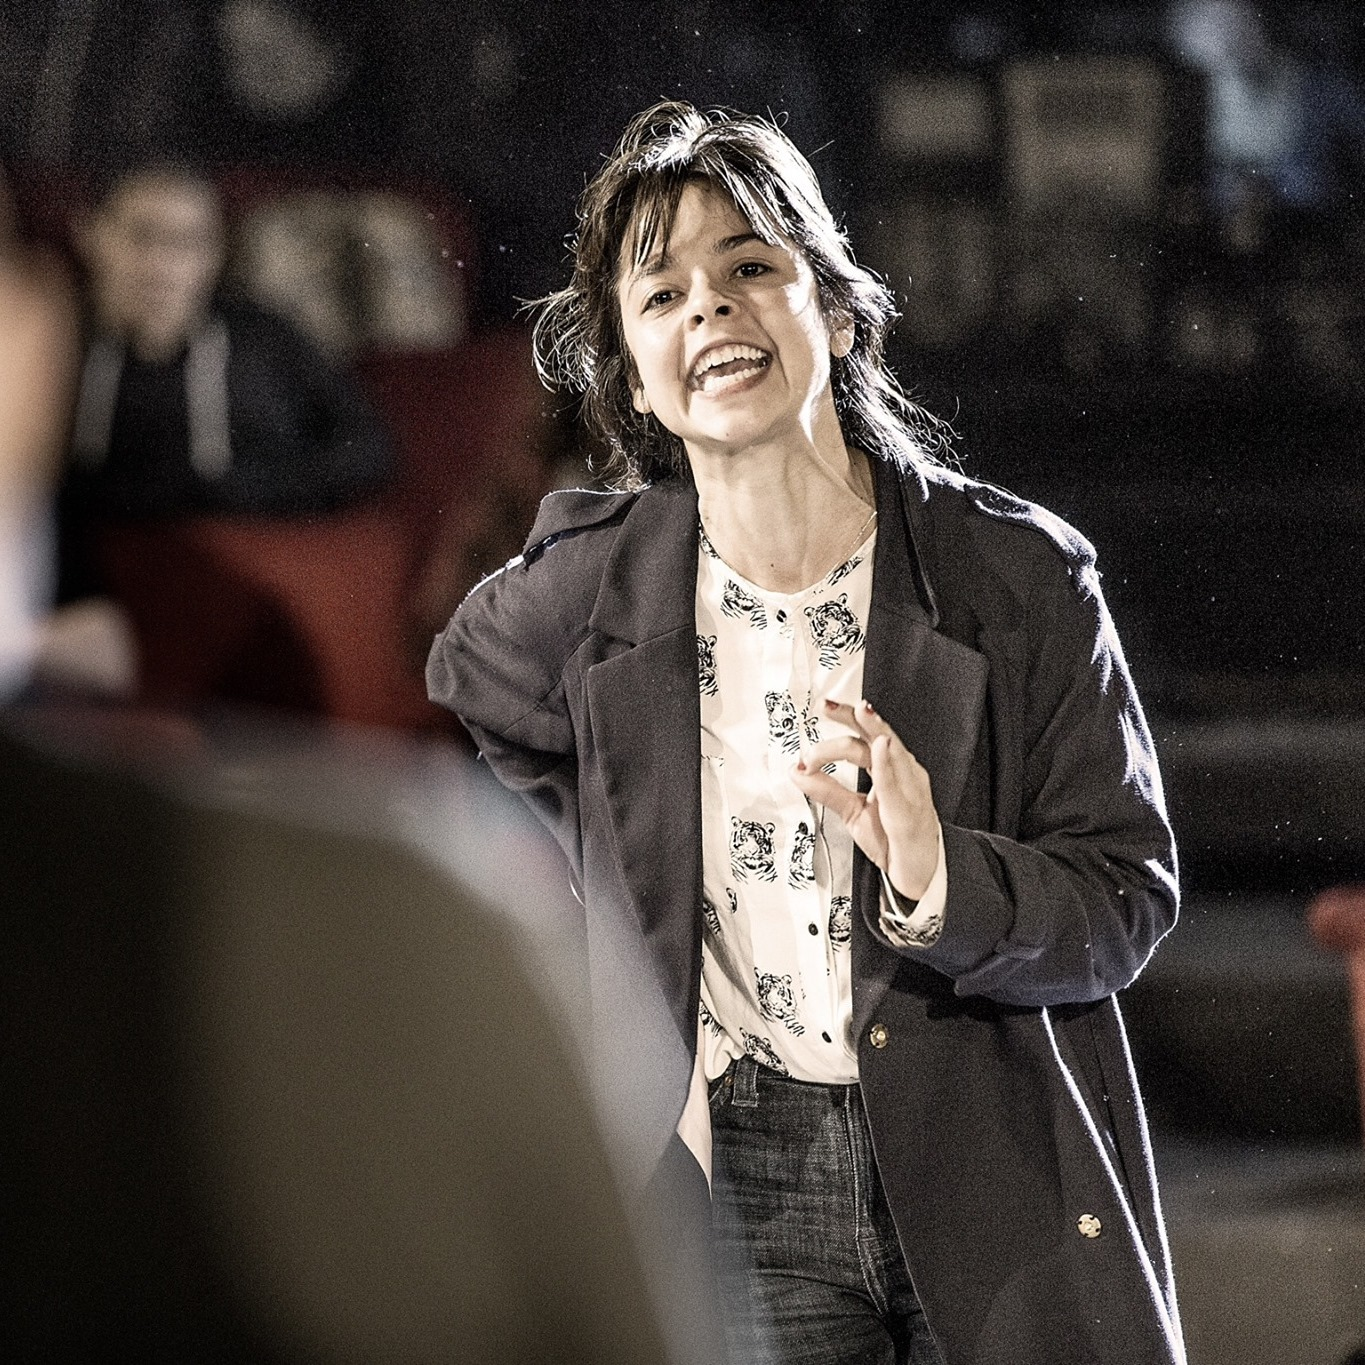 SCENES FROM A MARRIAGE DIRECTED BY IVO VAN HOVE